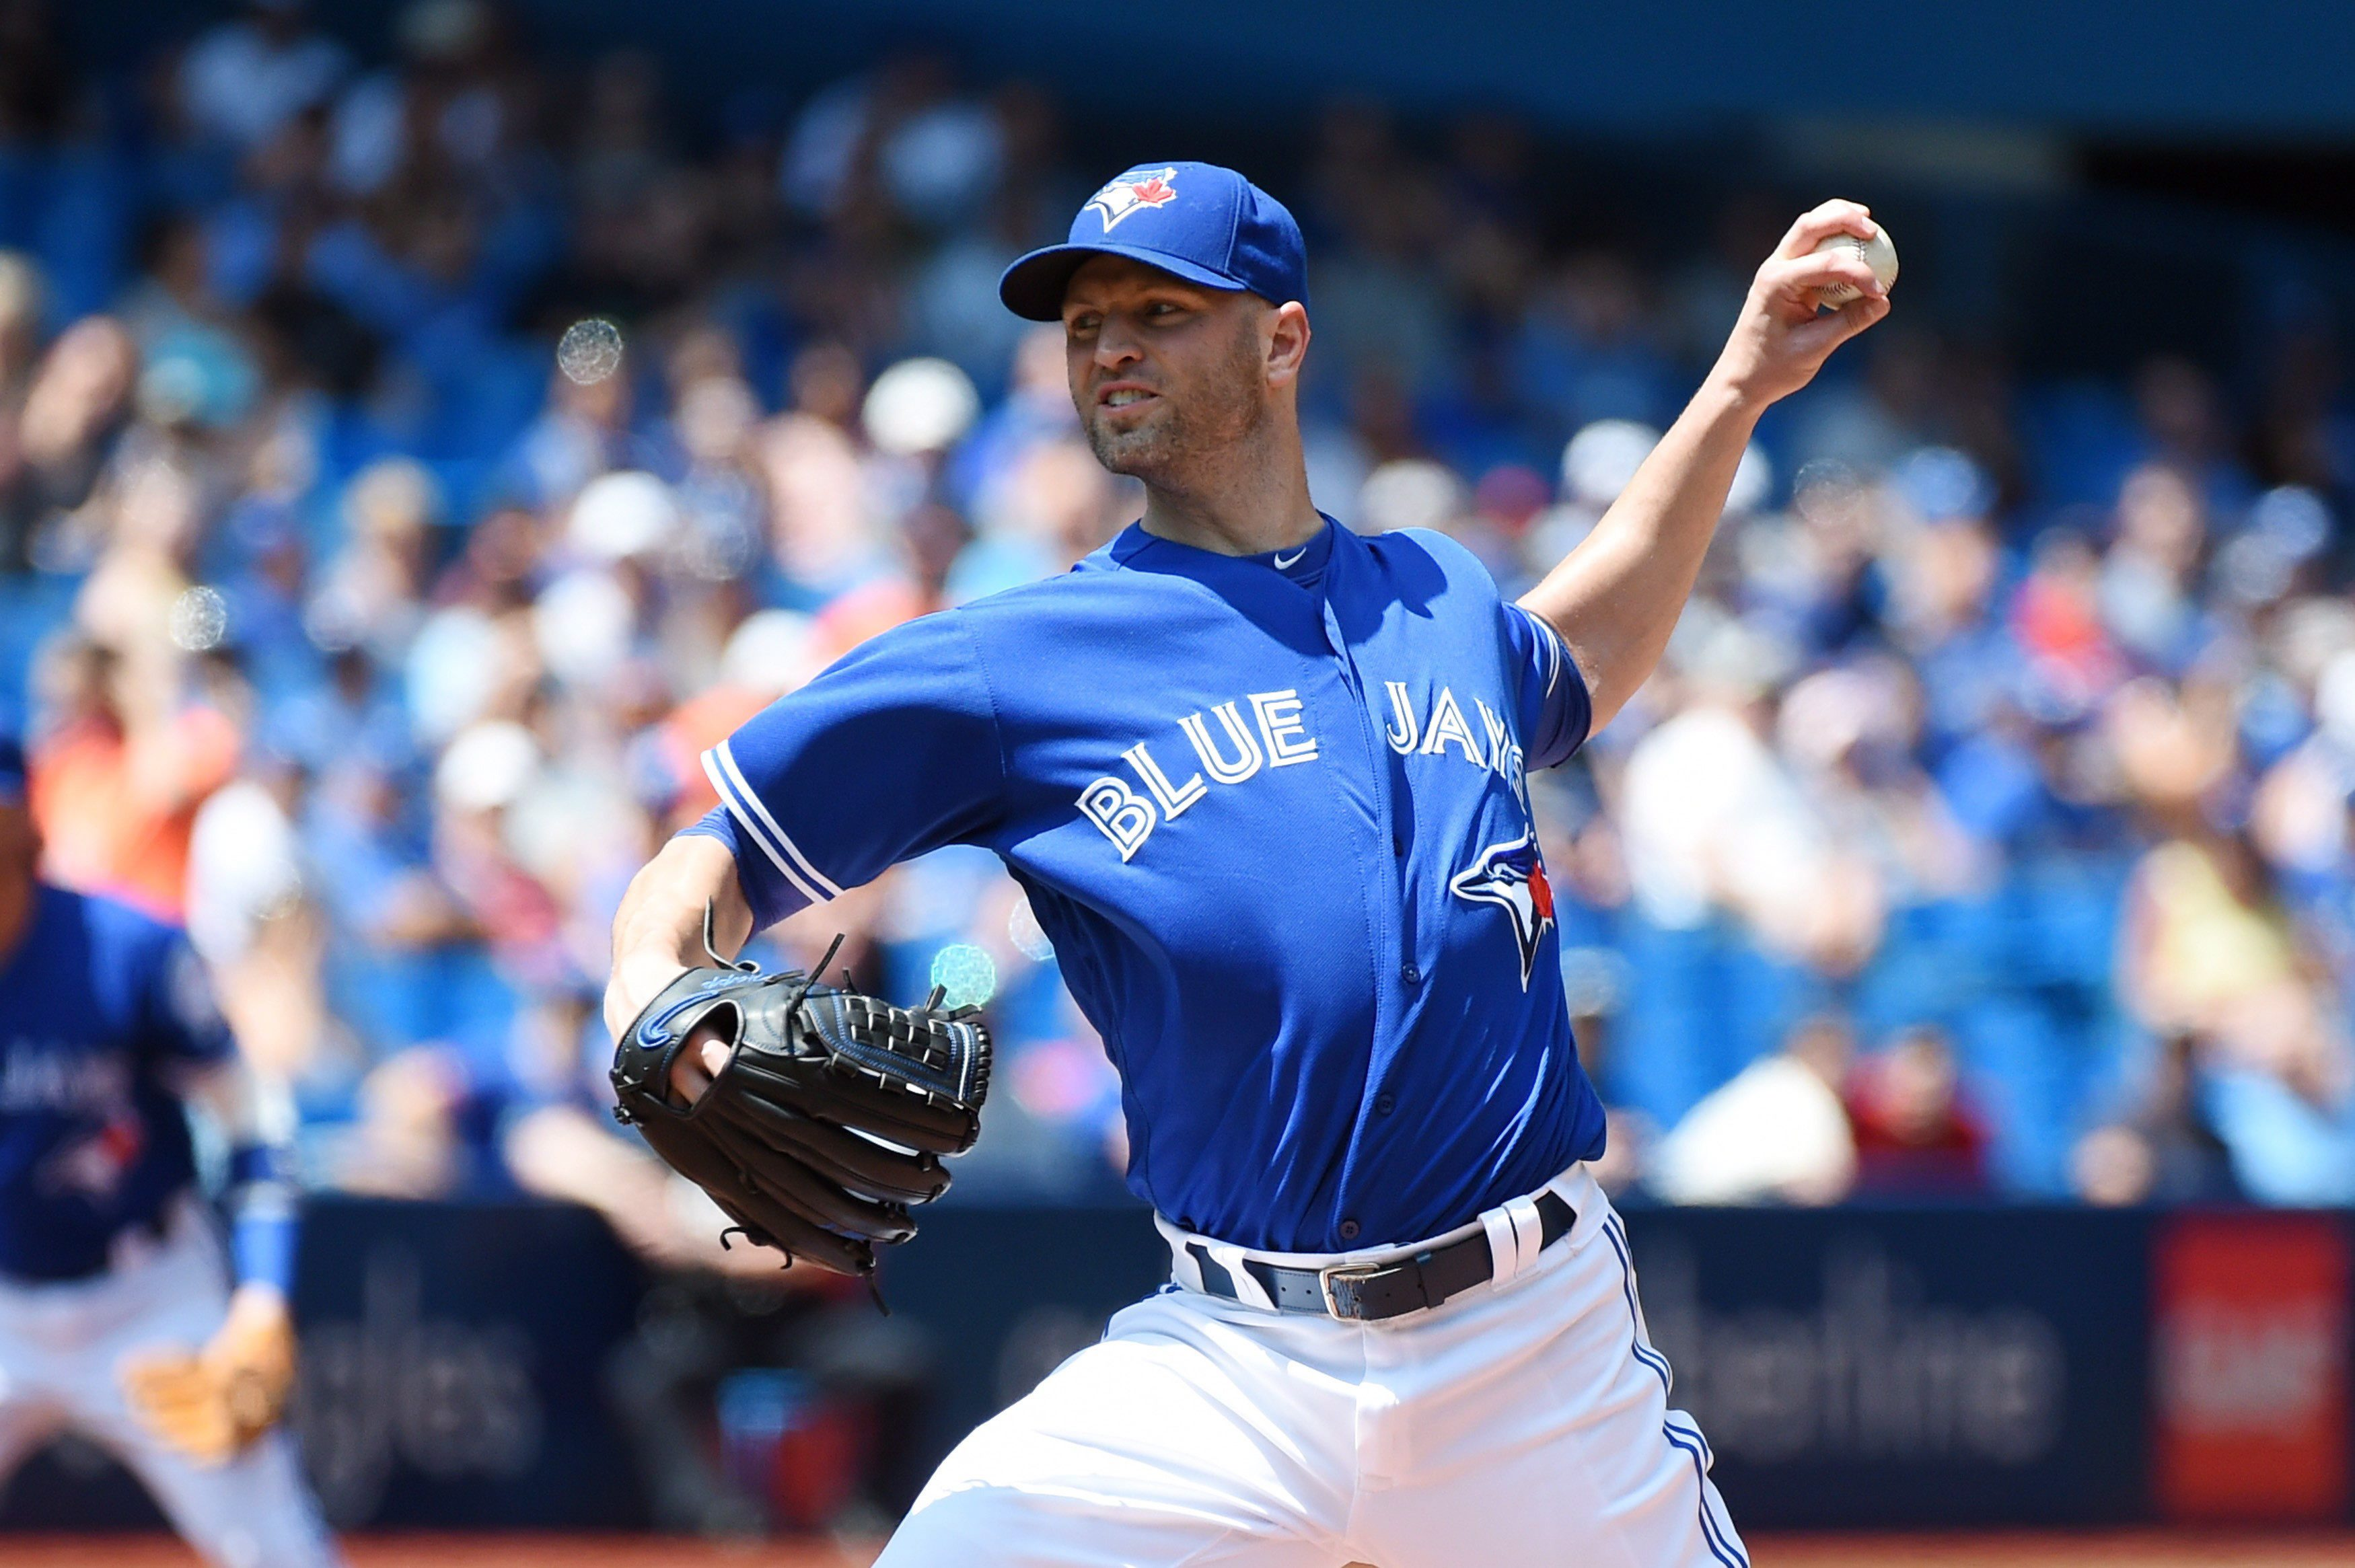 MLB Rumors: Yankees, Blue Jays Have J.A. Happ Trade Agreement